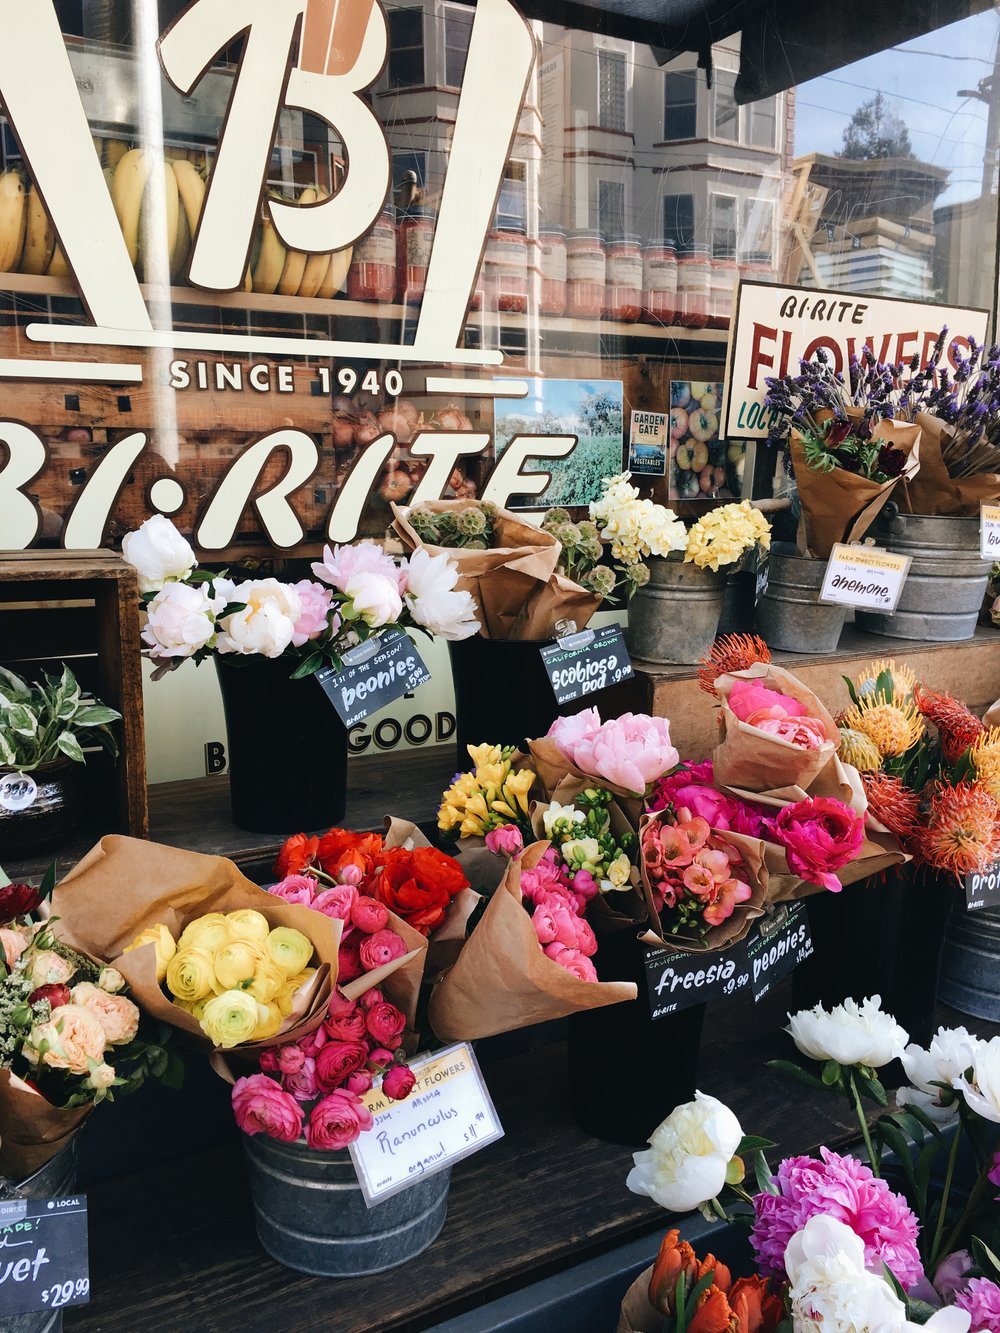 THERE'S ALWAYS FRESH FLOWERS - Because we like to support our local businesses.